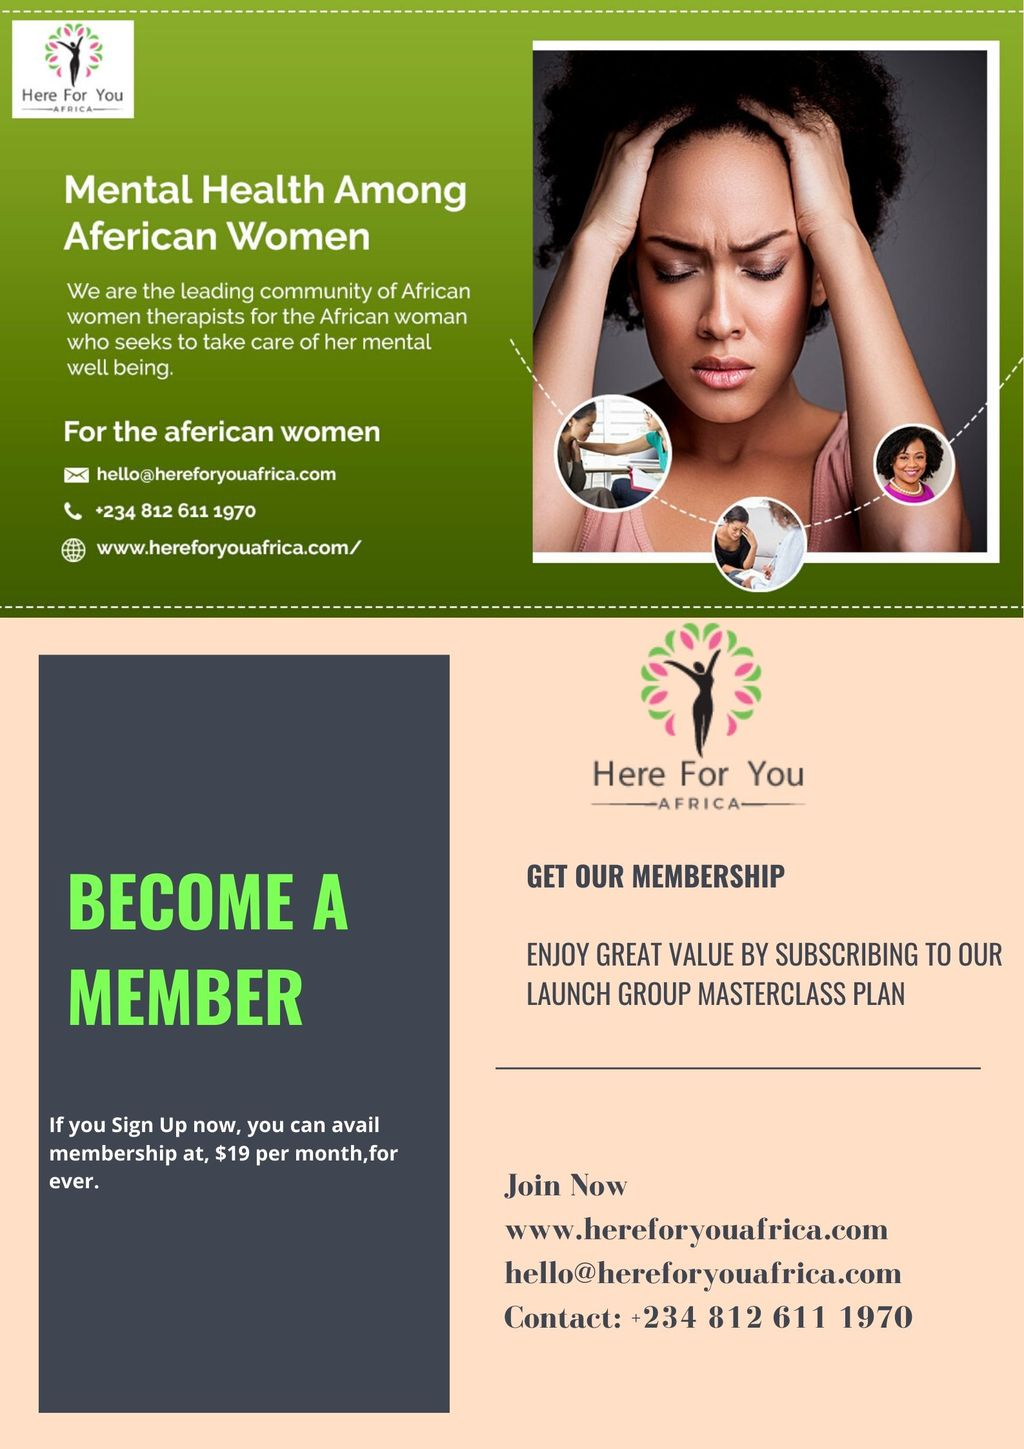 Here For You Africa | Become A Member | Mental Health Therap... via Here For You Africa Ltd